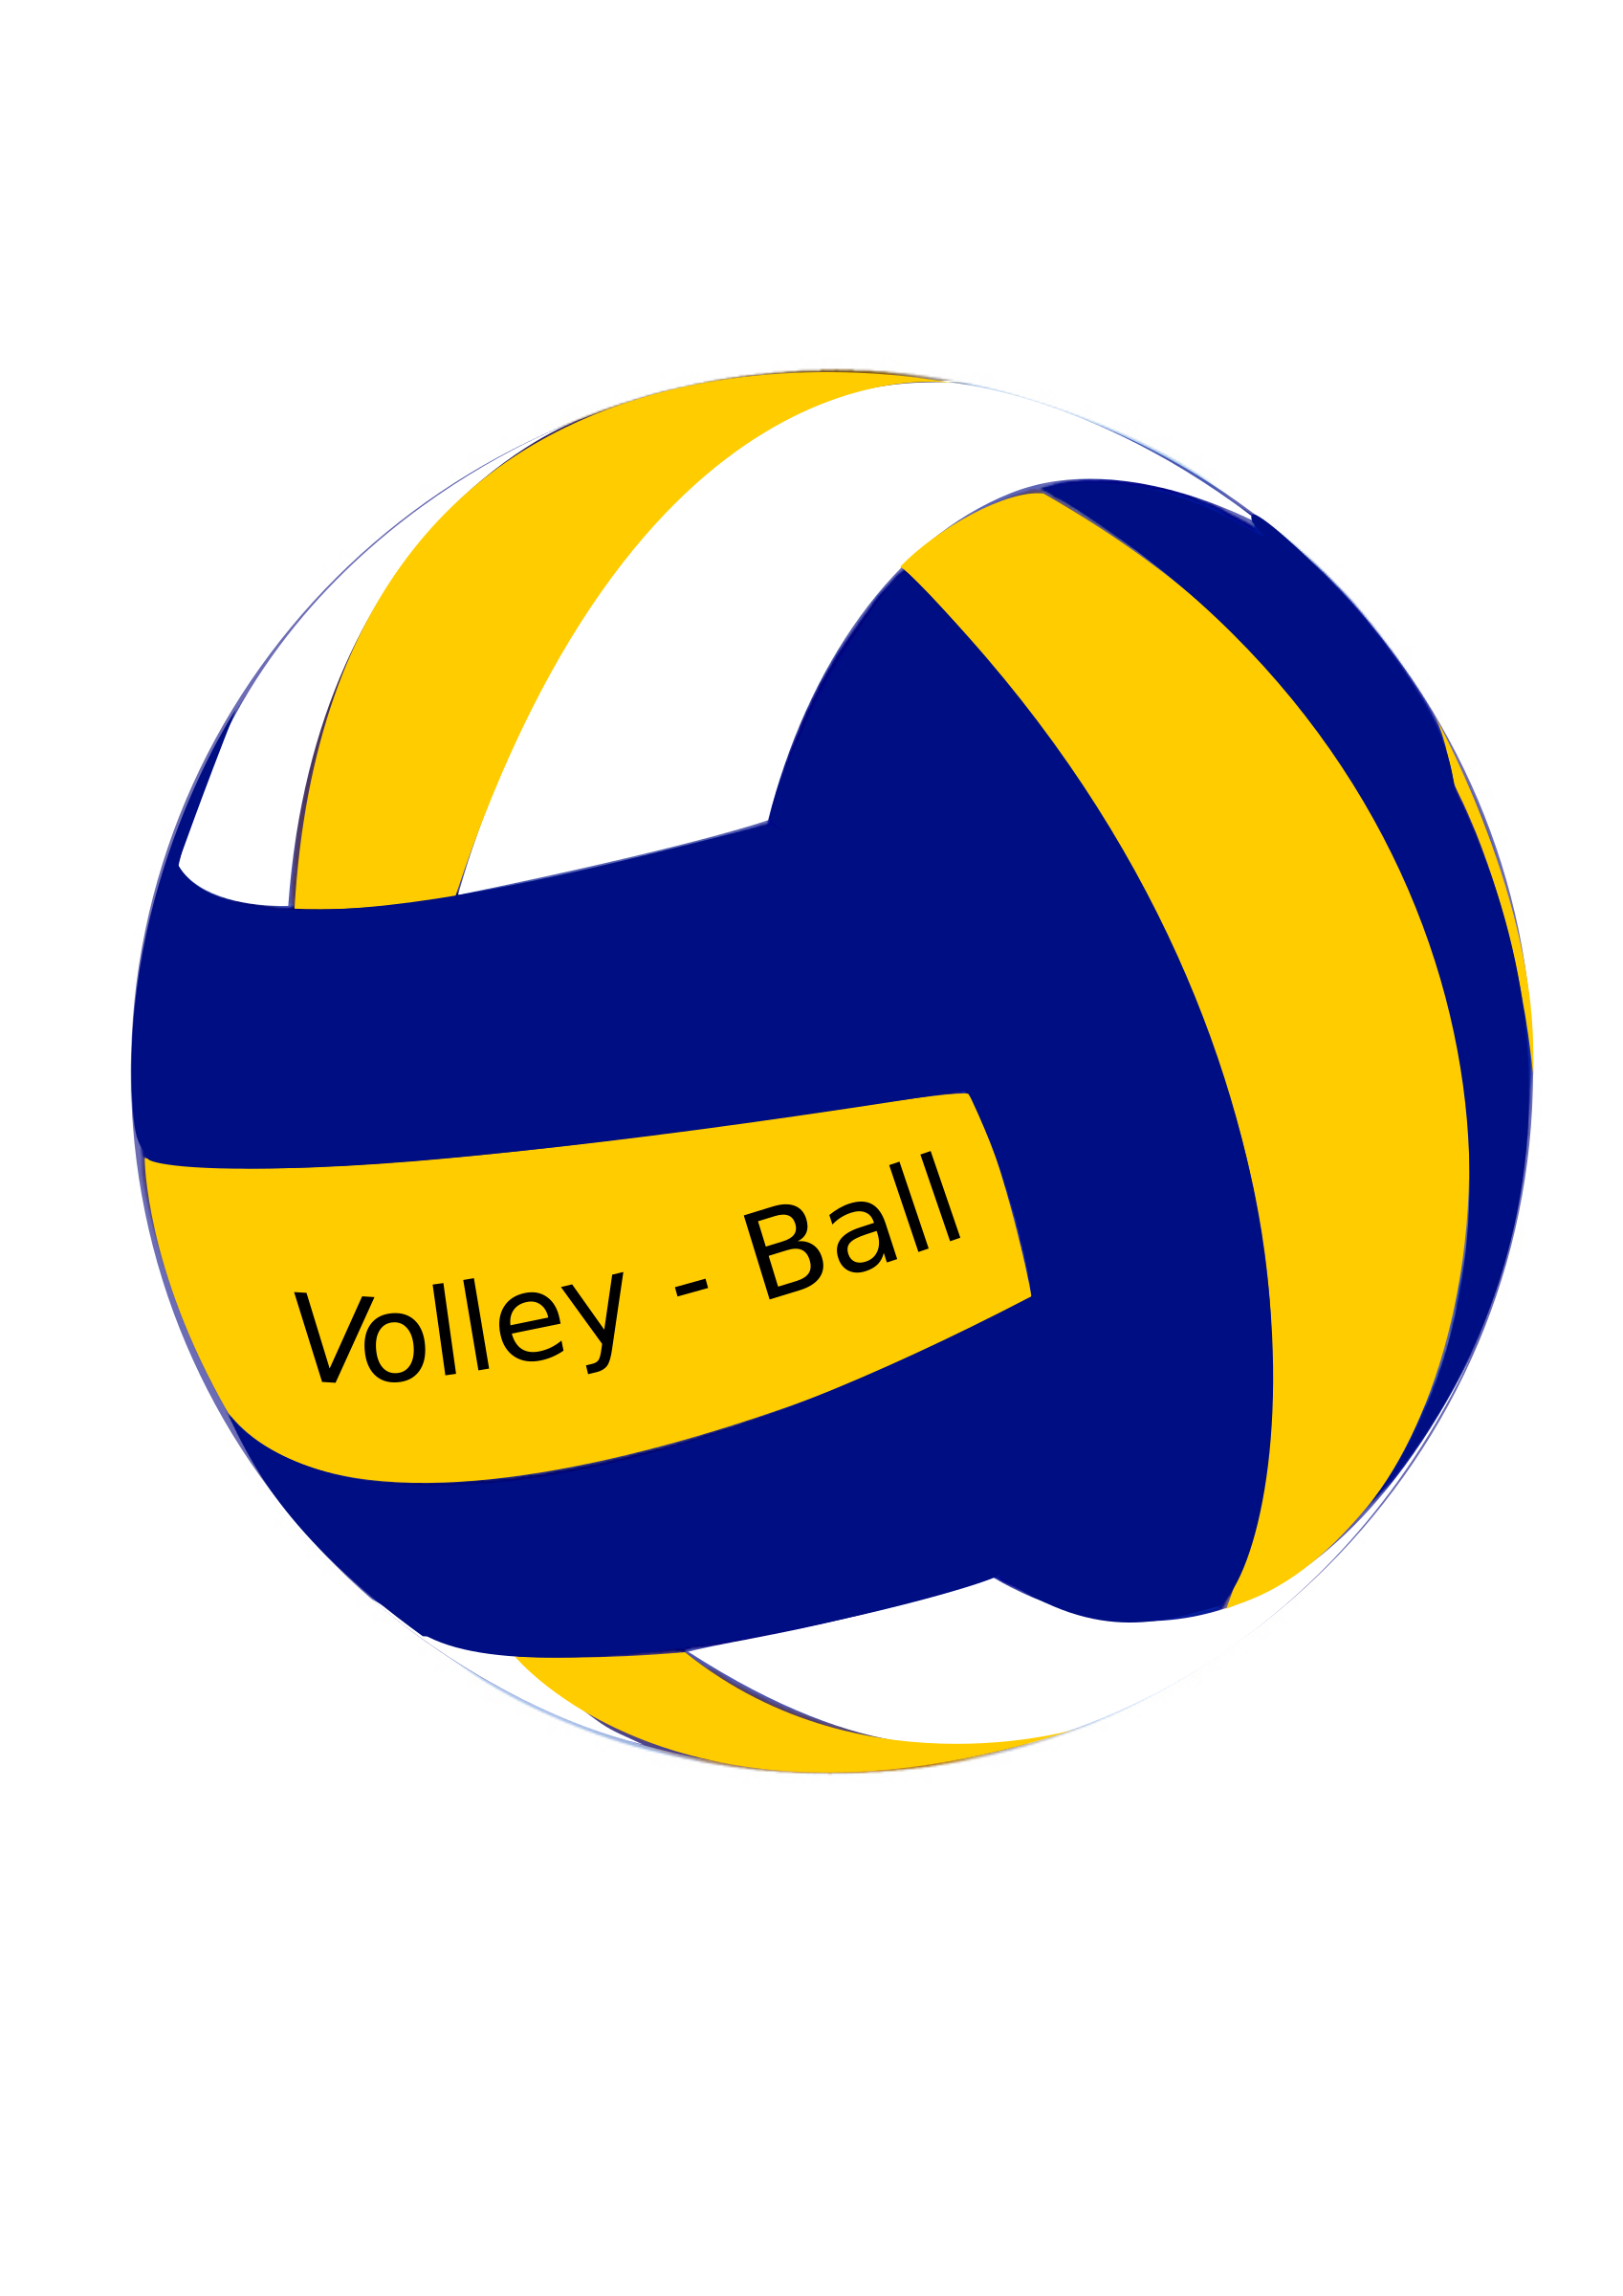 VolleyBall Female Ball by agelmi